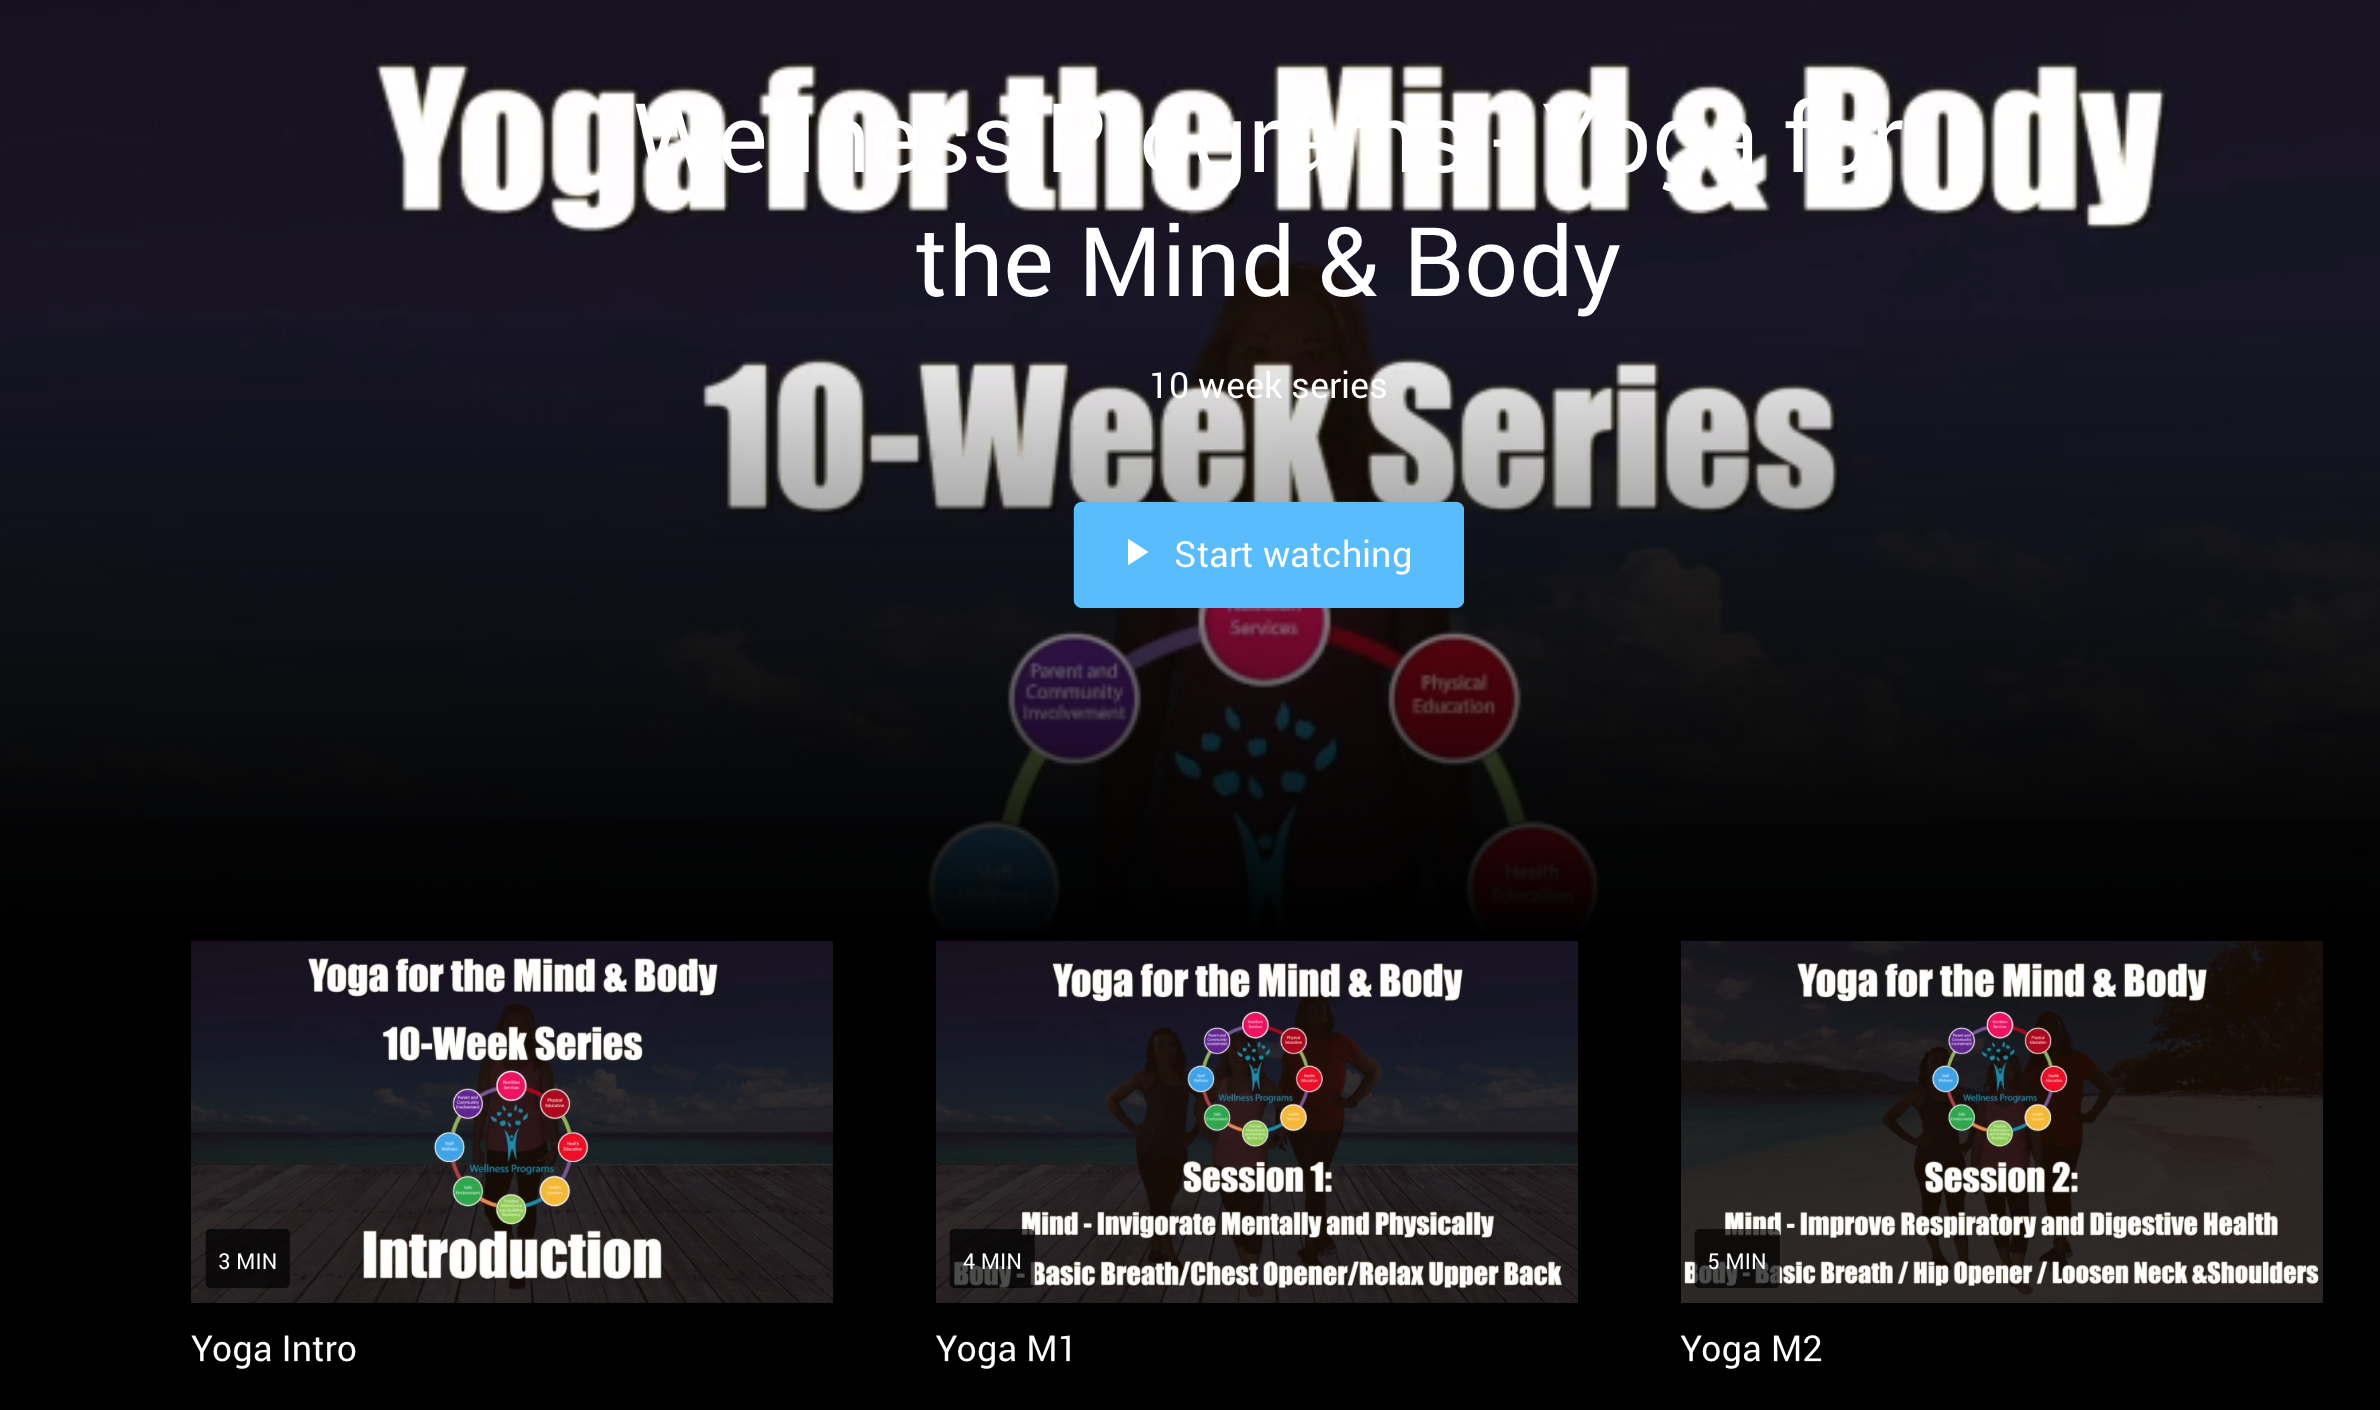 Yoga for the Mind & Body videos